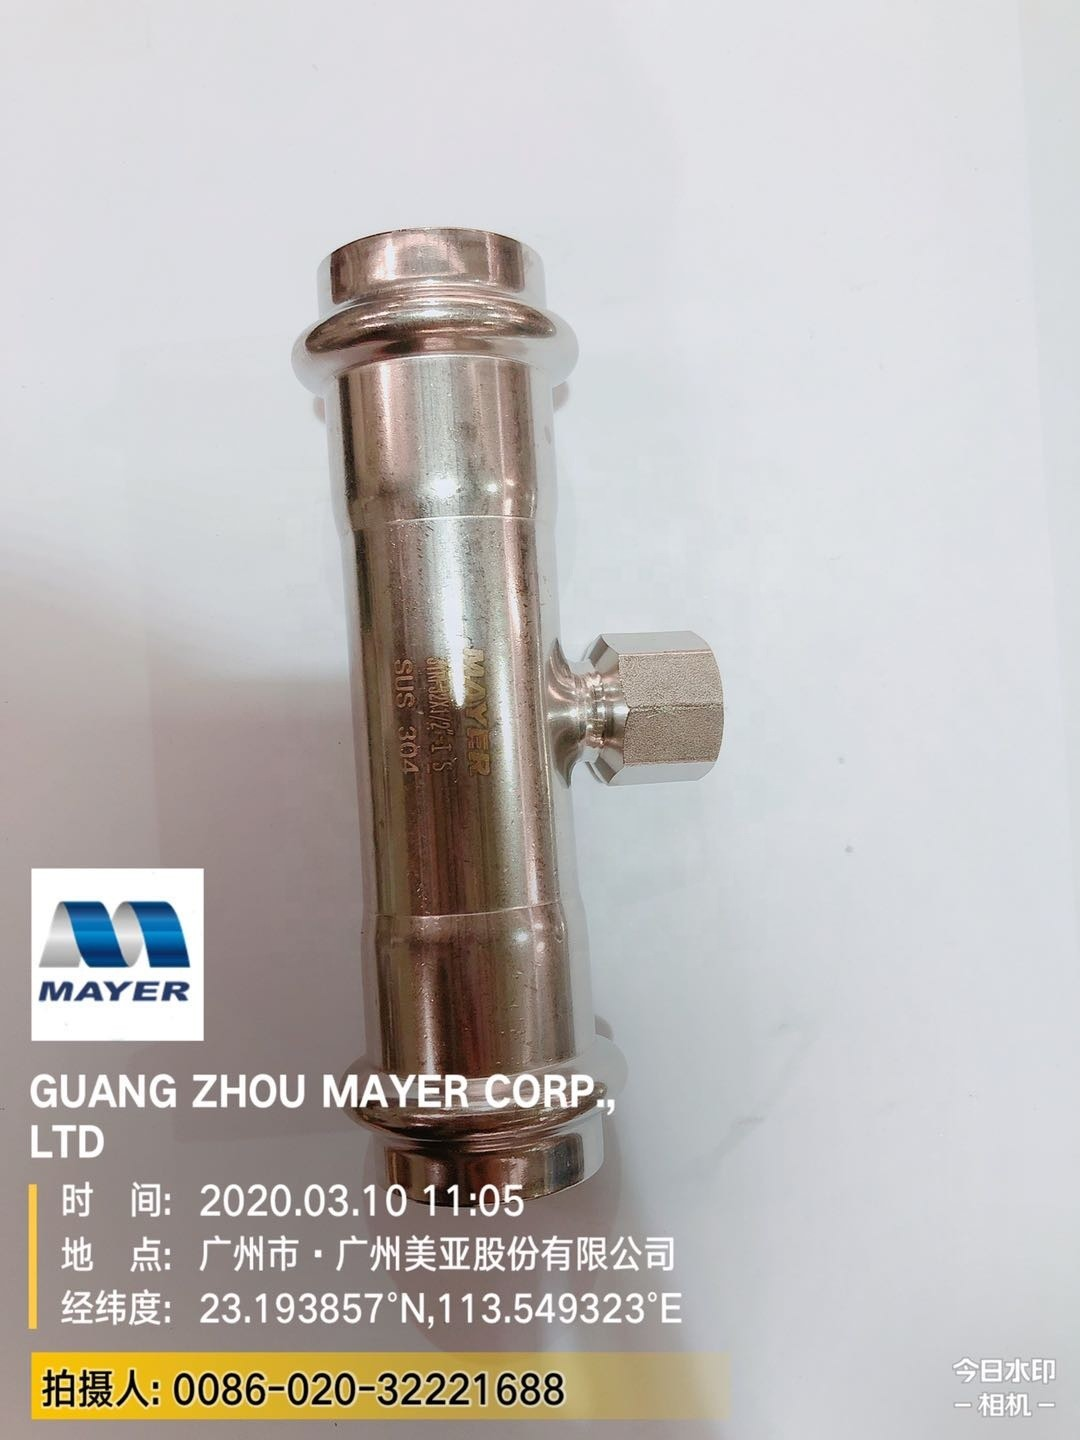 Factory Price Stainless Steel Plumbing Pipe Fitting for Water Supply